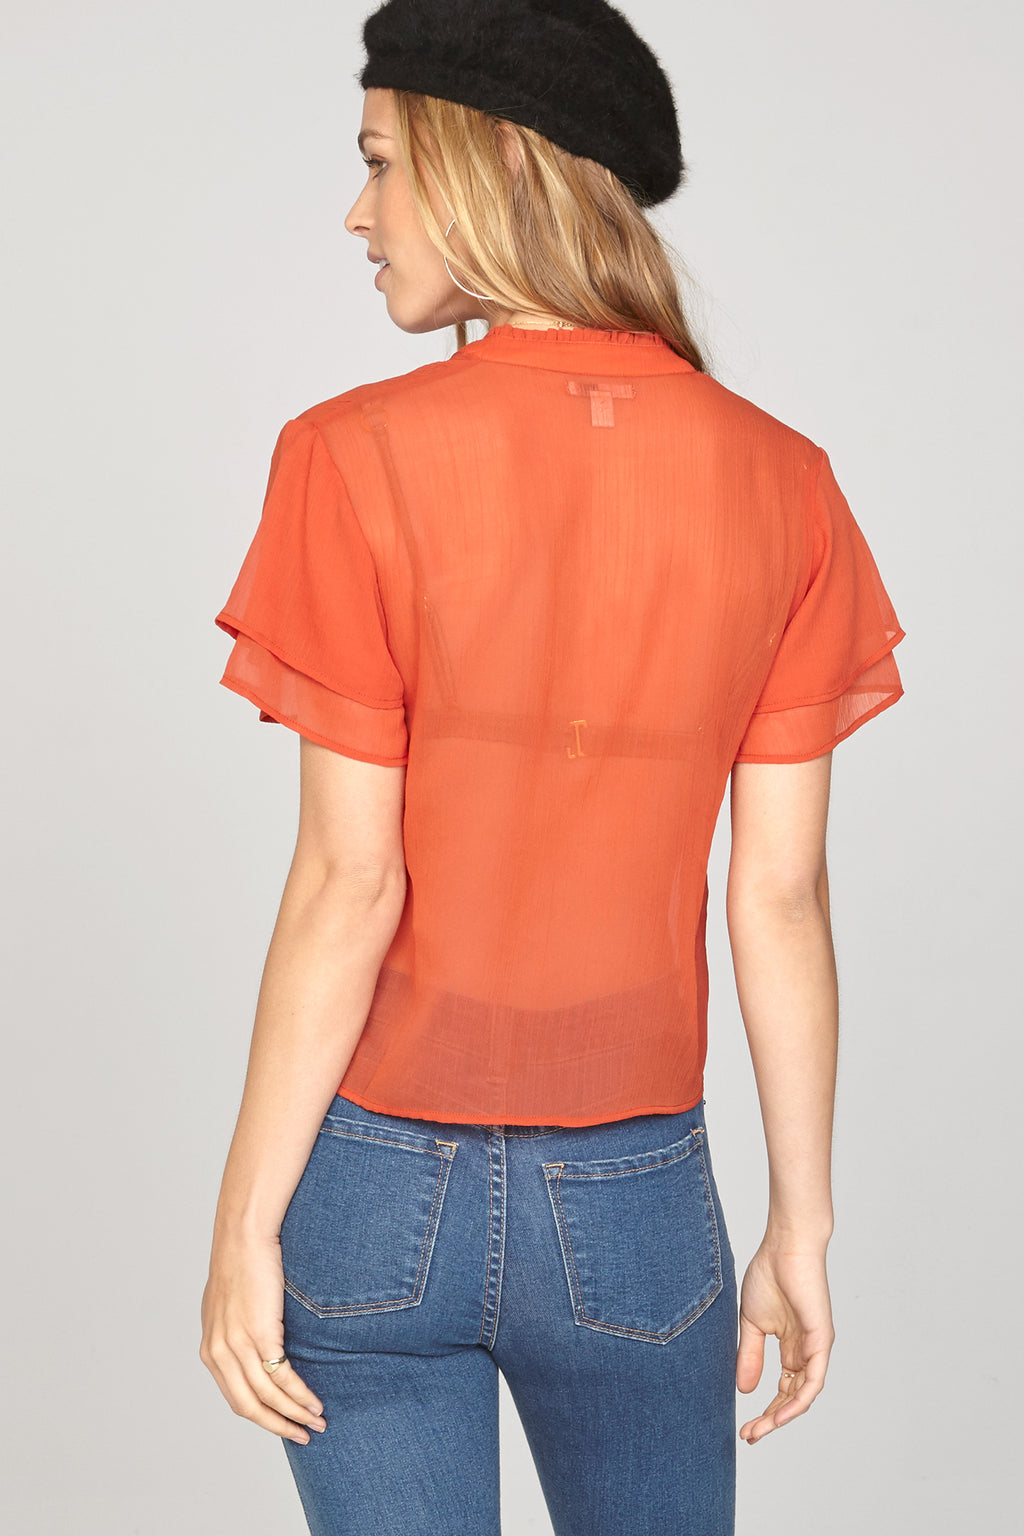 Good Intentions Woven Top - Red